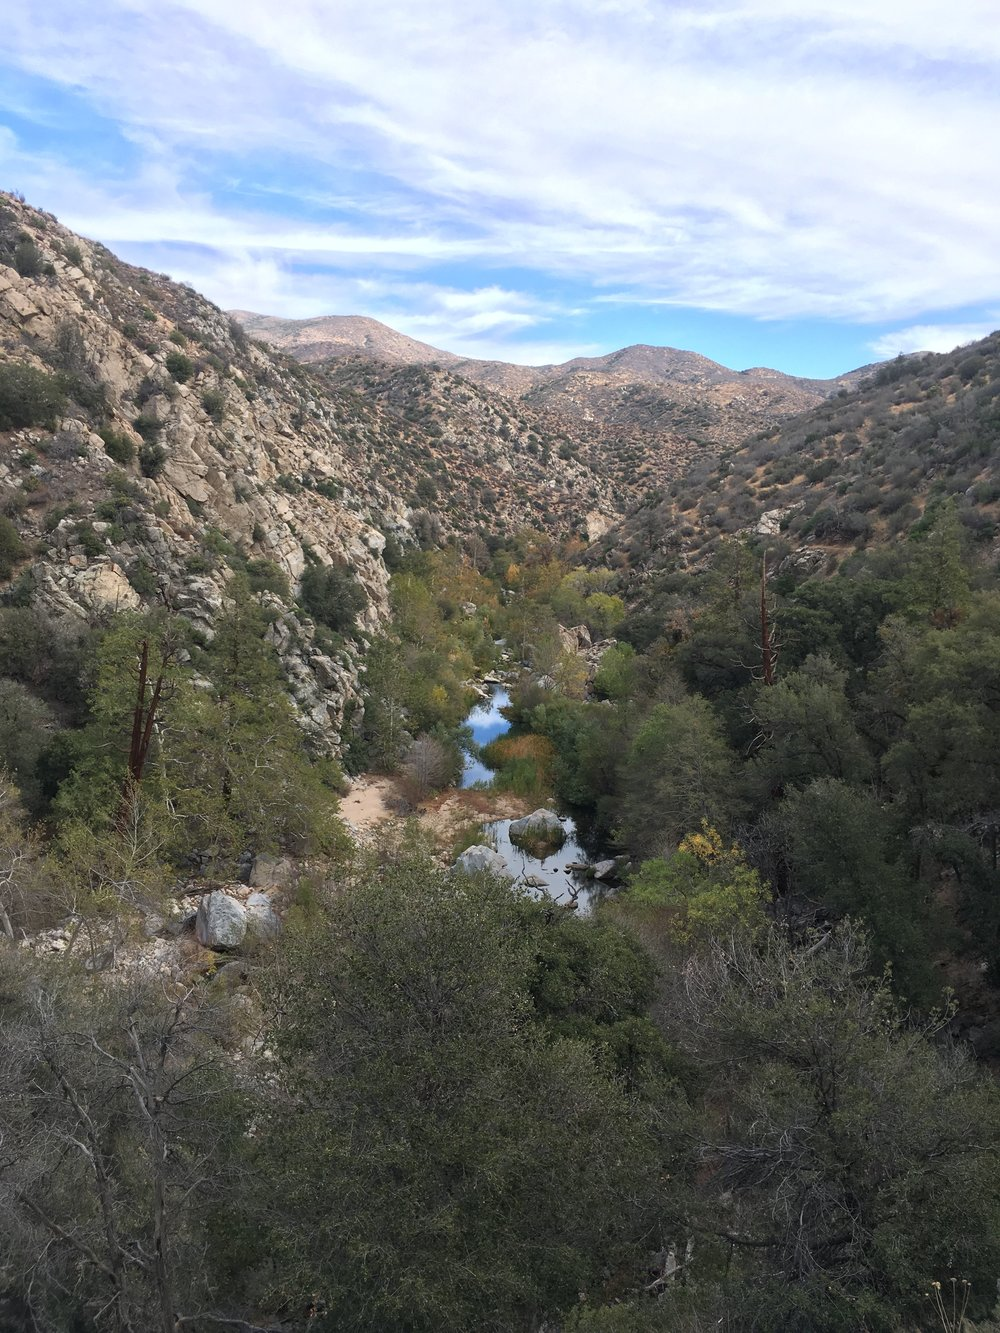 Deep Creek Canyon, an oasis in the Transverse Ranges of the desert.